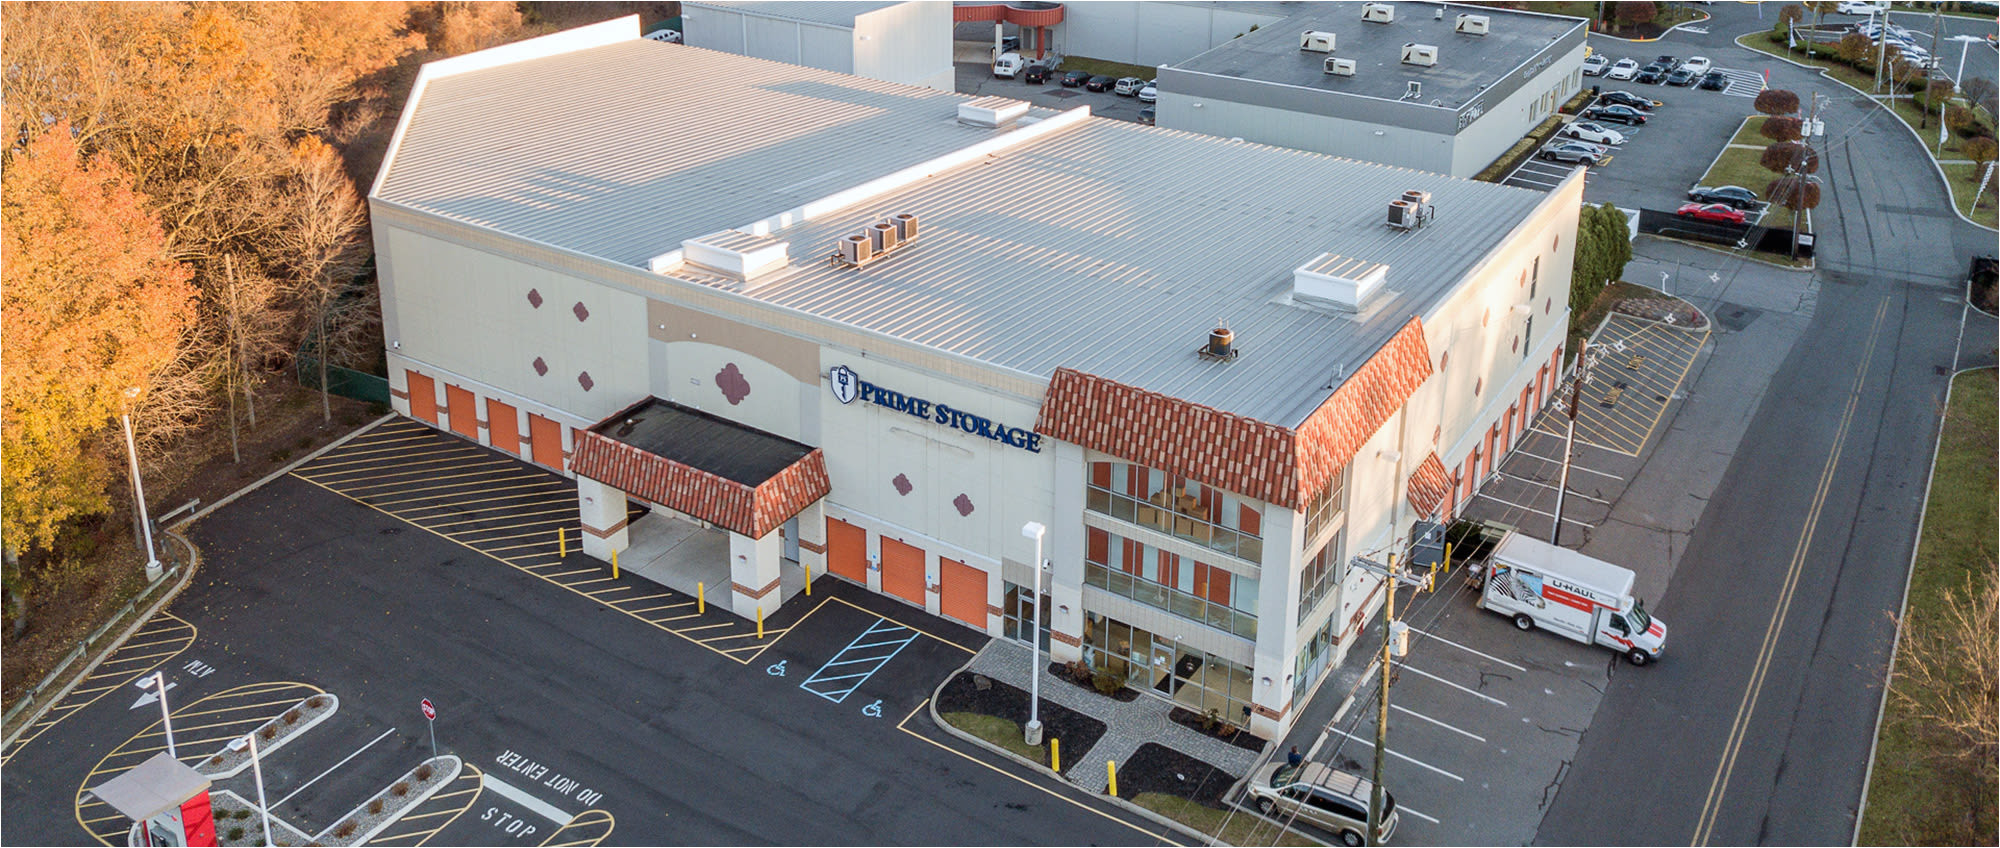 Public Storage 2nd Loop Road Florence Sc Prime Storage Self Storage Company